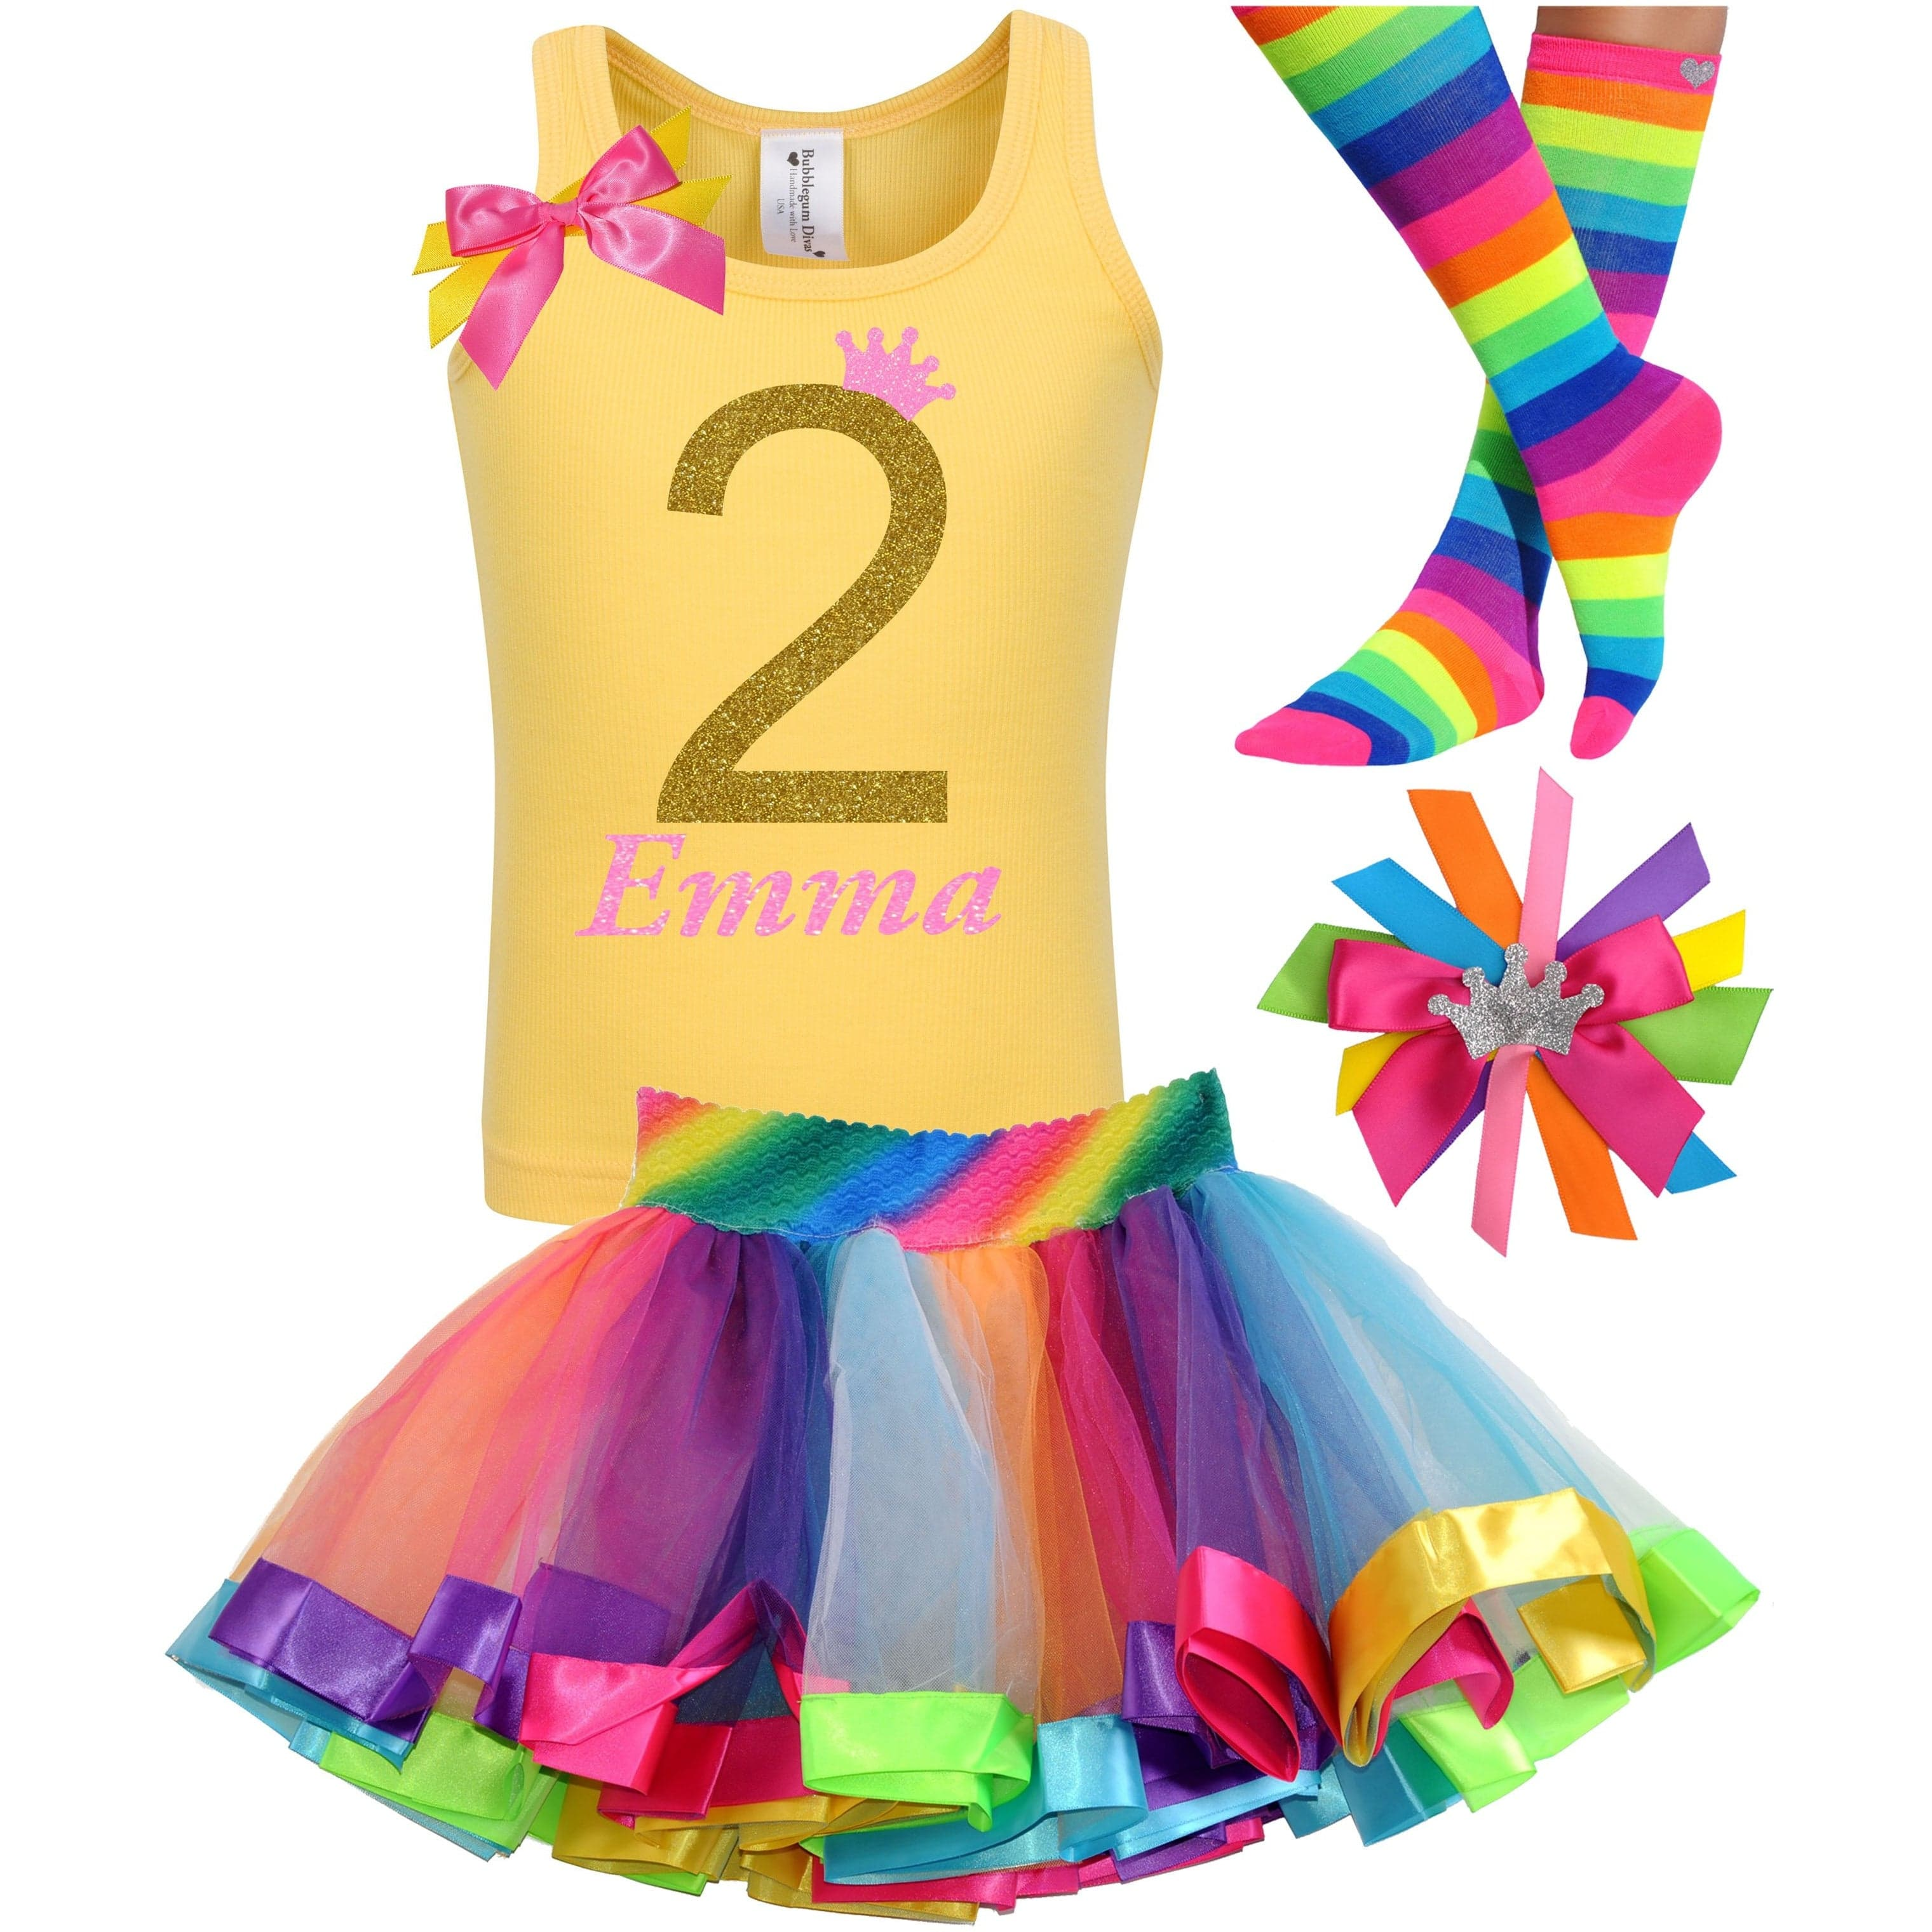 2nd Birthday Gold Glitter Shirt Girls Rainbow Tutu Party Outfit 4PC Set